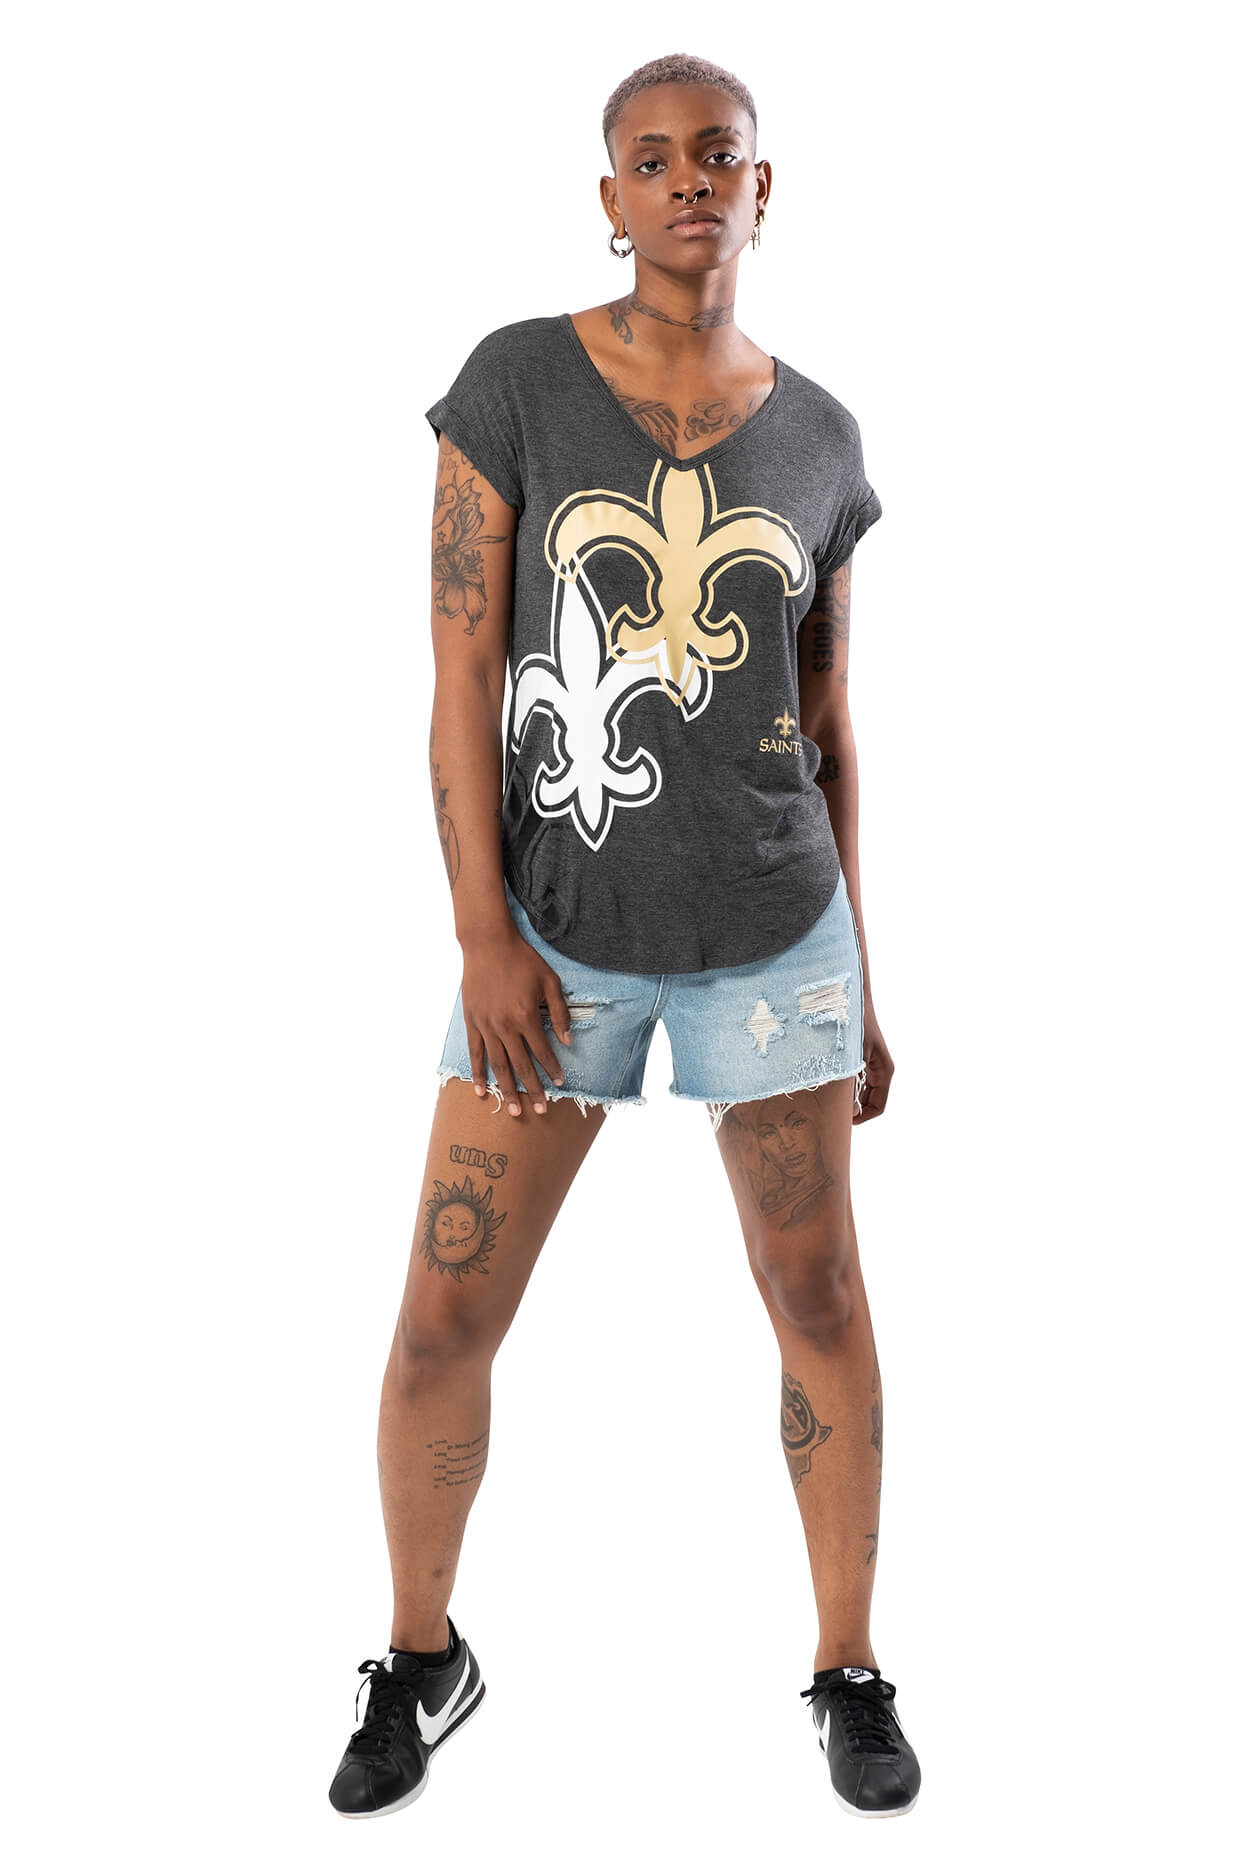 NFL New Orleans Saints Women's V-Neck Tee|New Orleans Saints